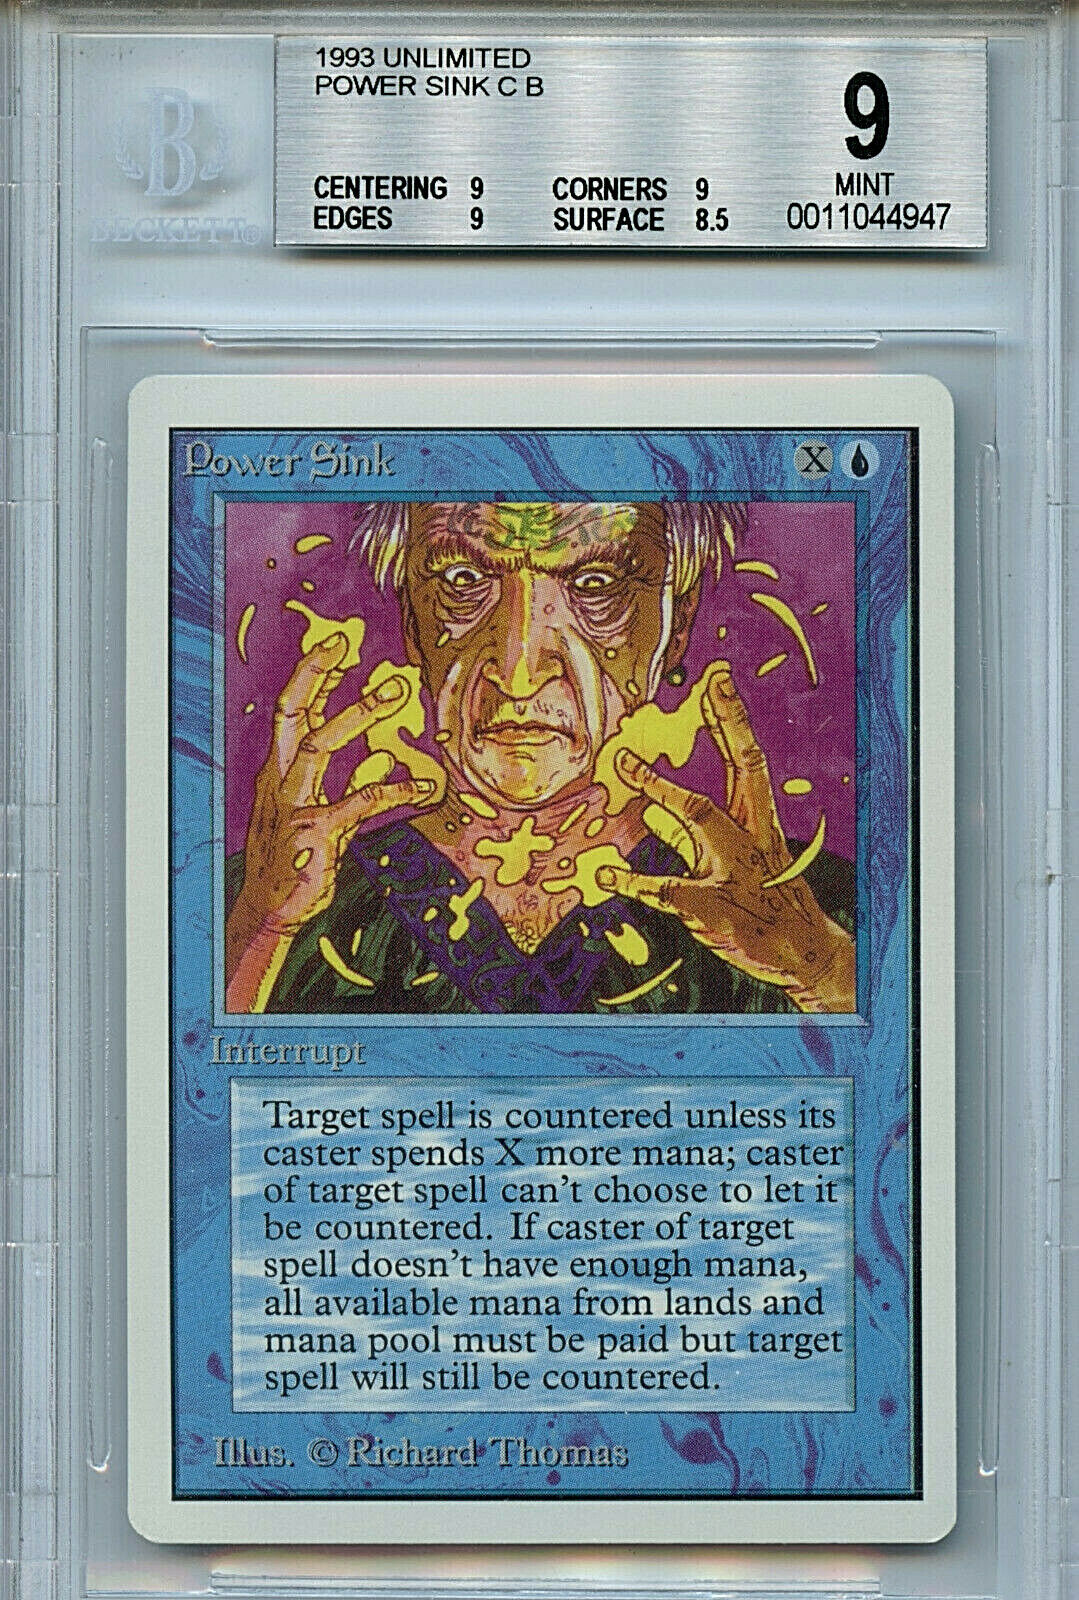 MTG Unlimited Power Sink BGS 9.0 (9) (9) (9) Mint Magic Card Amricons 4947 fcd338